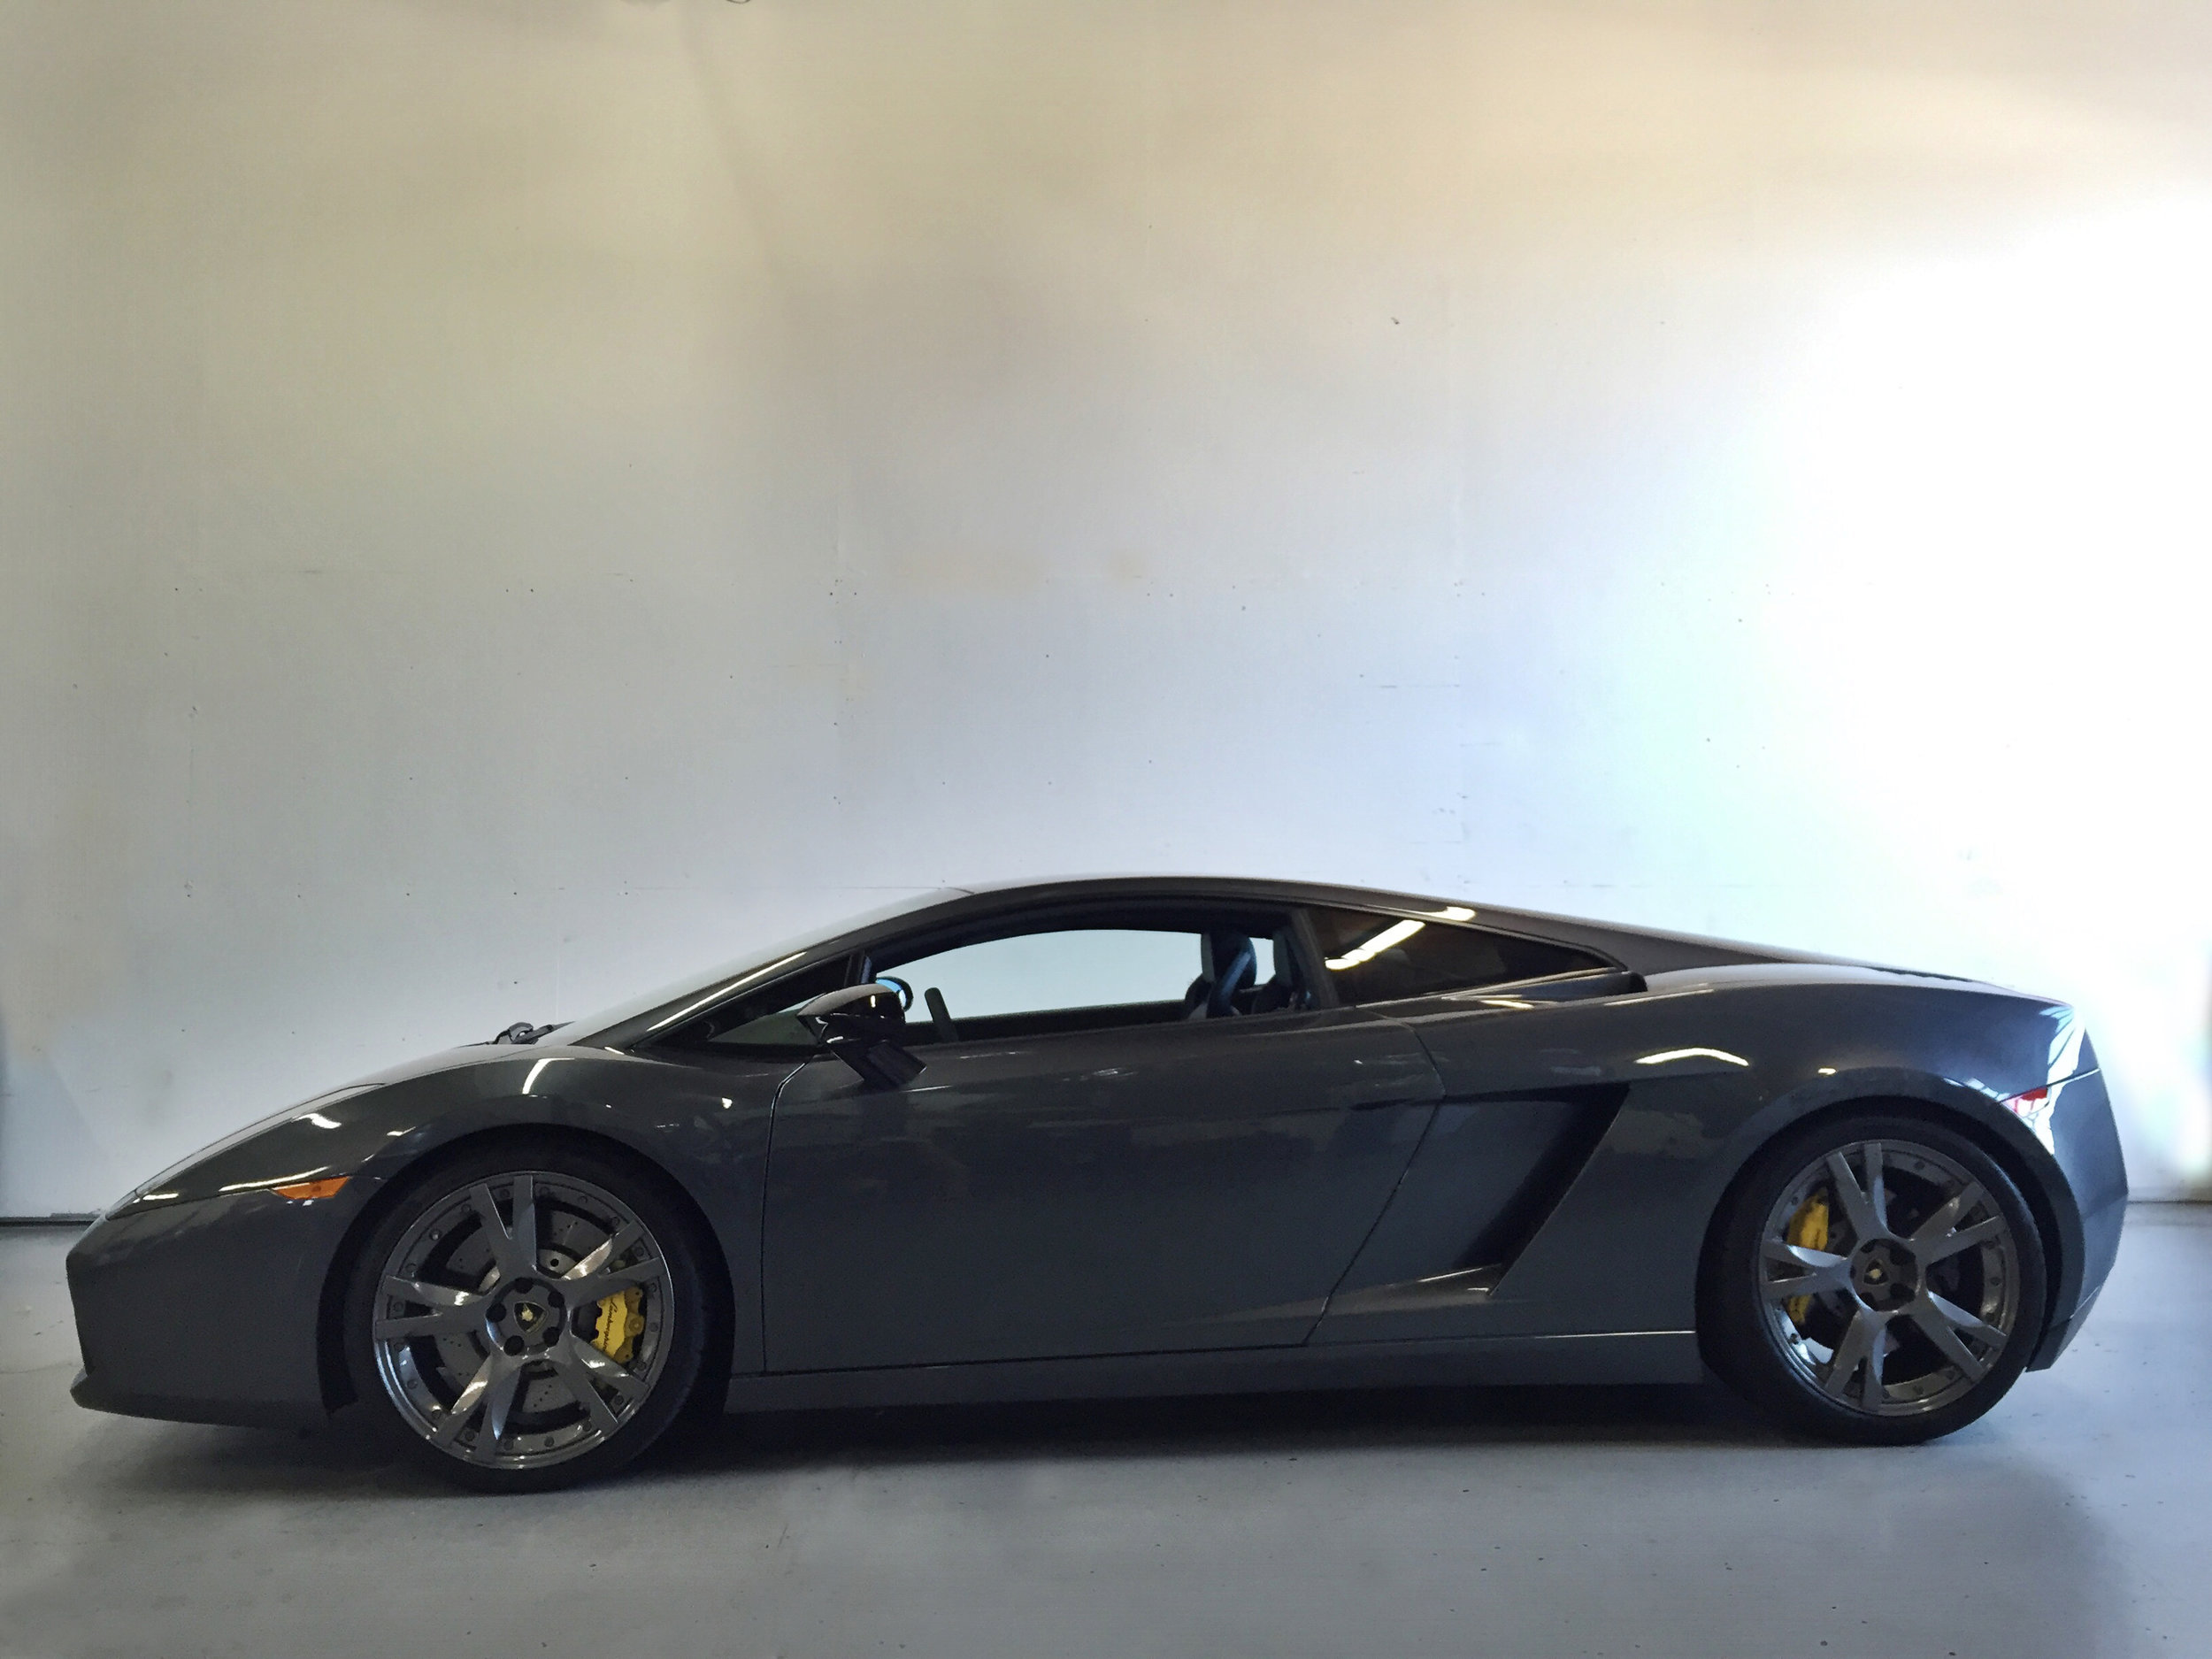 Botta Moto Works Lamborghini Gallardo SE side 2.jpg